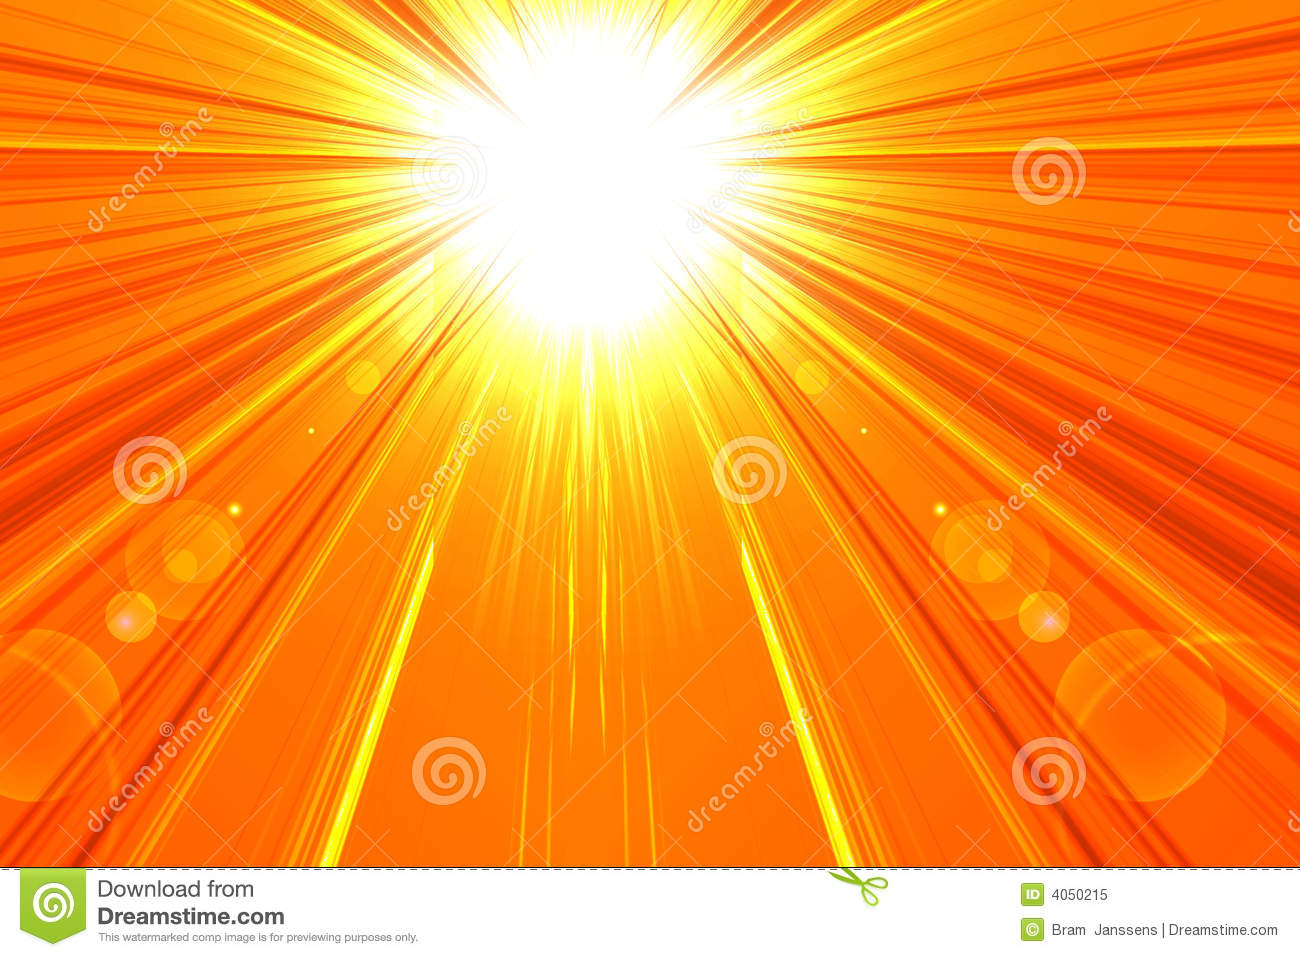 Hot Summer Sun Royalty Free Stock Photo - Image: 4050215